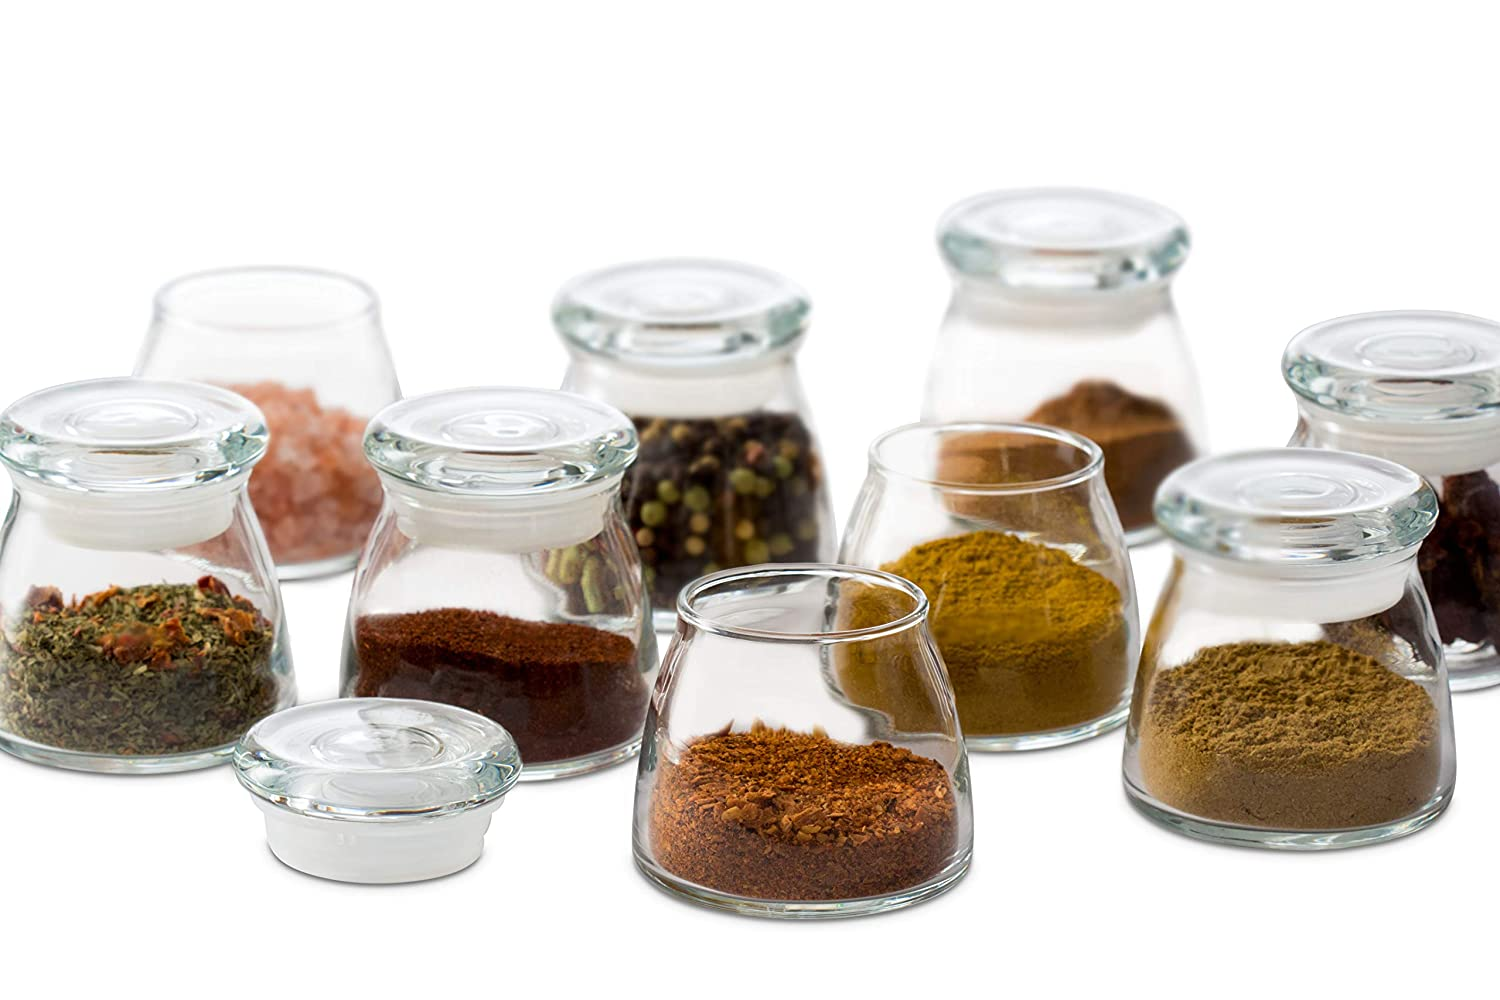 Libbey 71355 Vibe Mini Glass Spice Jars with Lids, Set of 12, 4.5 oz, Clear